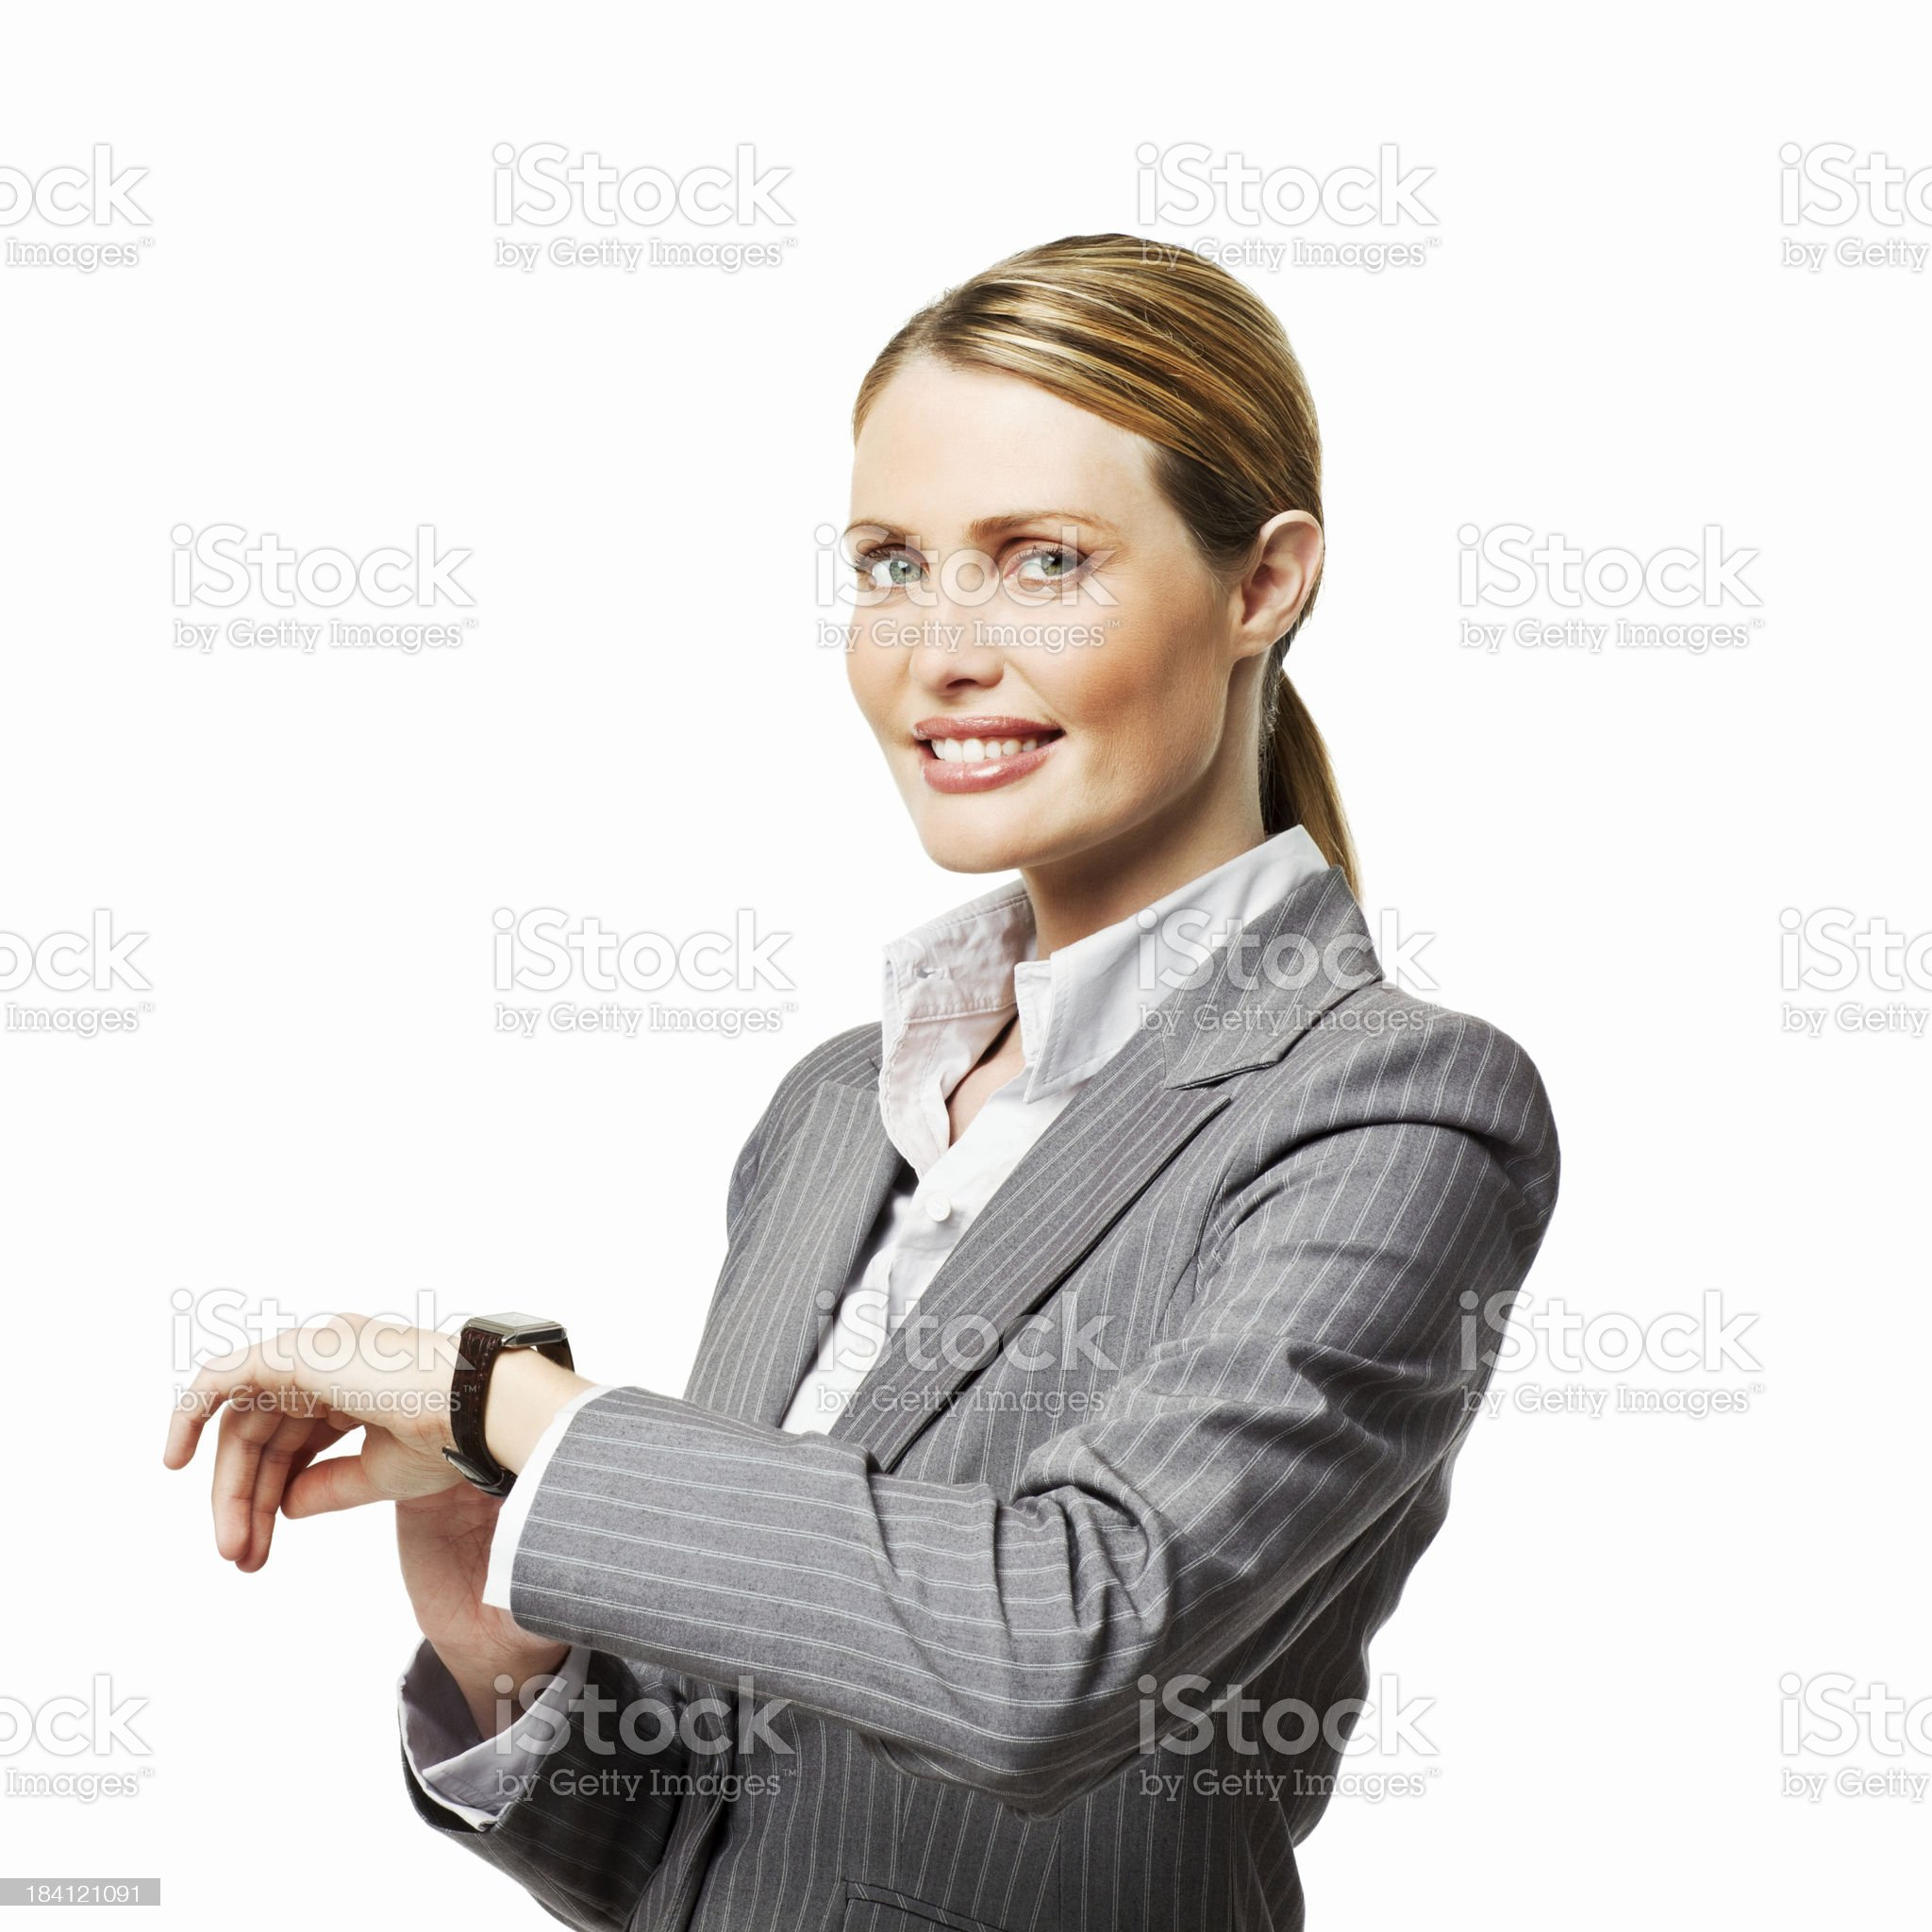 Businesswoman Checking the Time - Isolated royalty-free stock photo